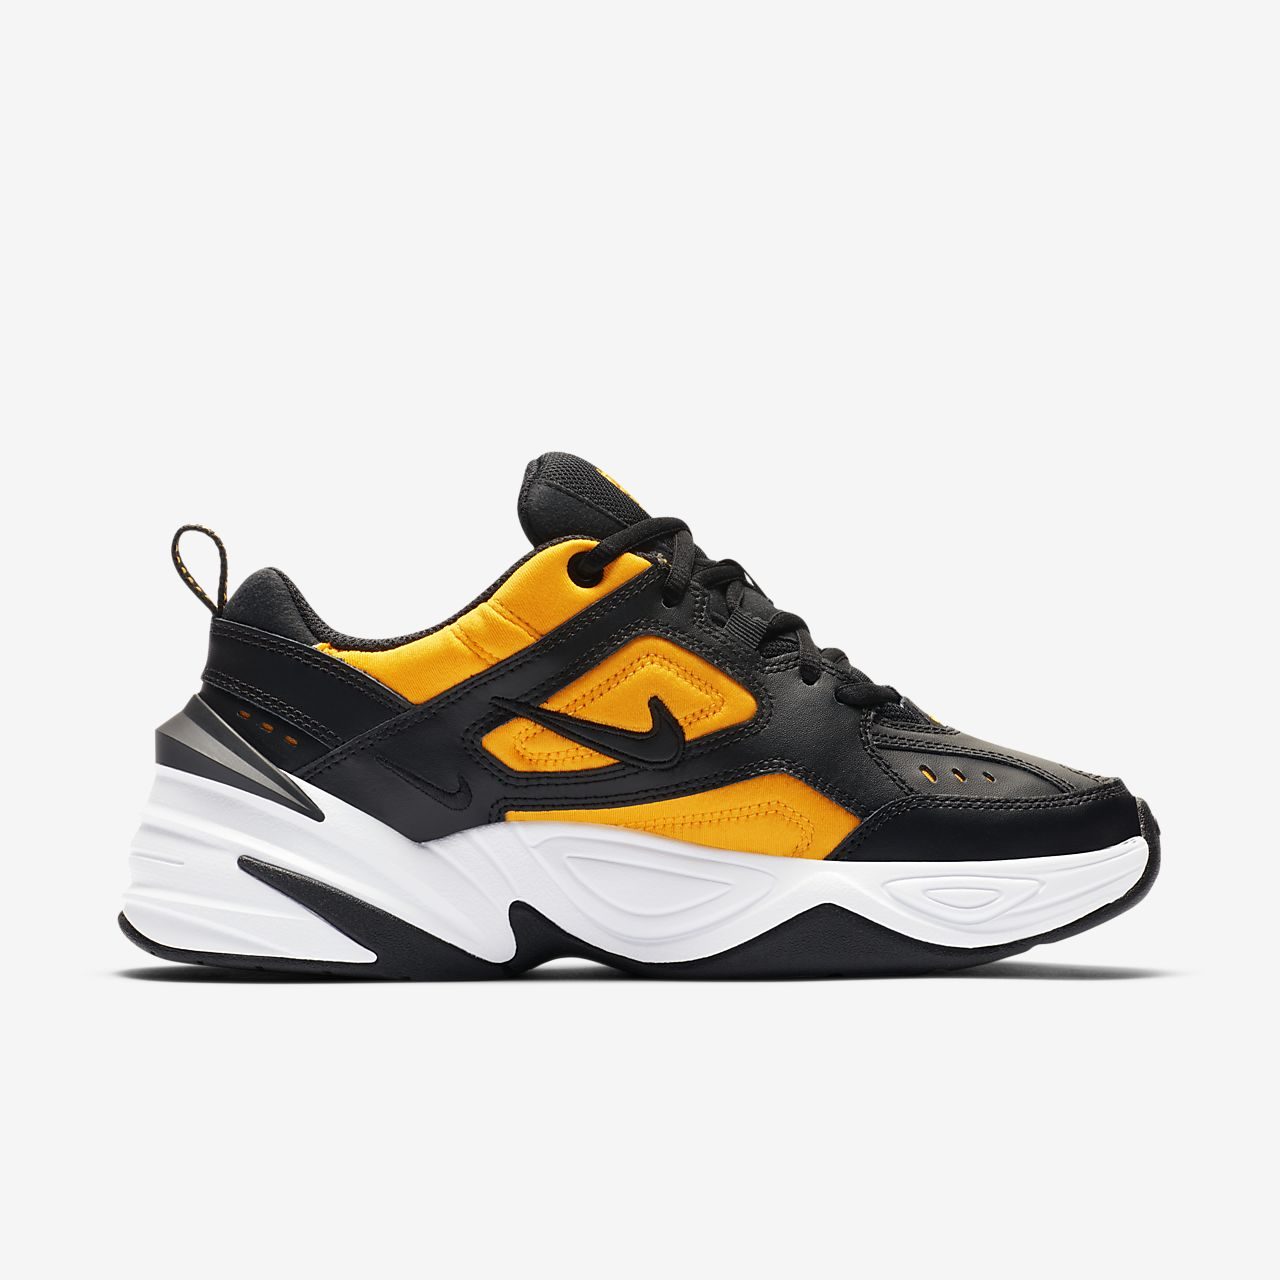 7b717b73fc Low Resolution Nike M2K Tekno Shoe Nike M2K Tekno Shoe